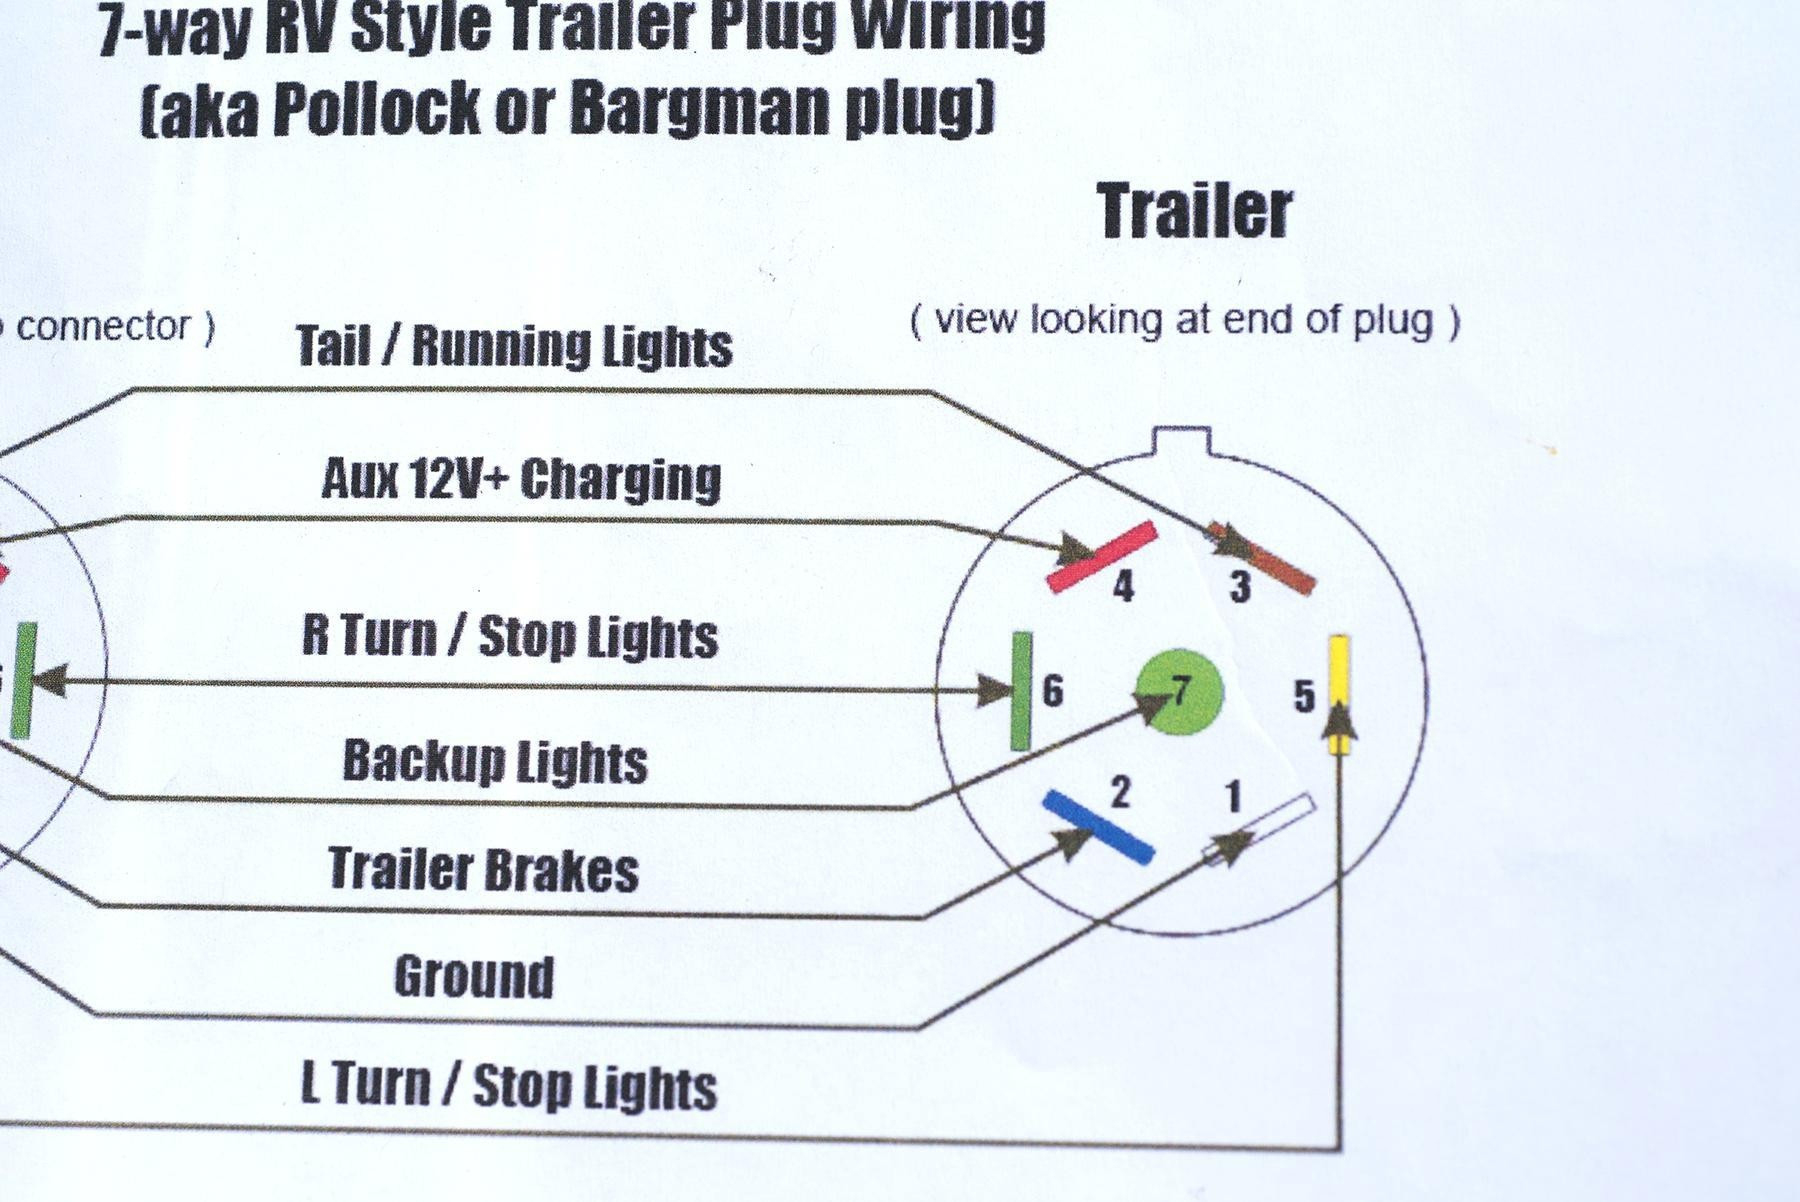 Phillips 7 Pin Trailer Connector Wiring Diagram - Wiring Data Diagram - 7-Way Trailer Wiring Diagram